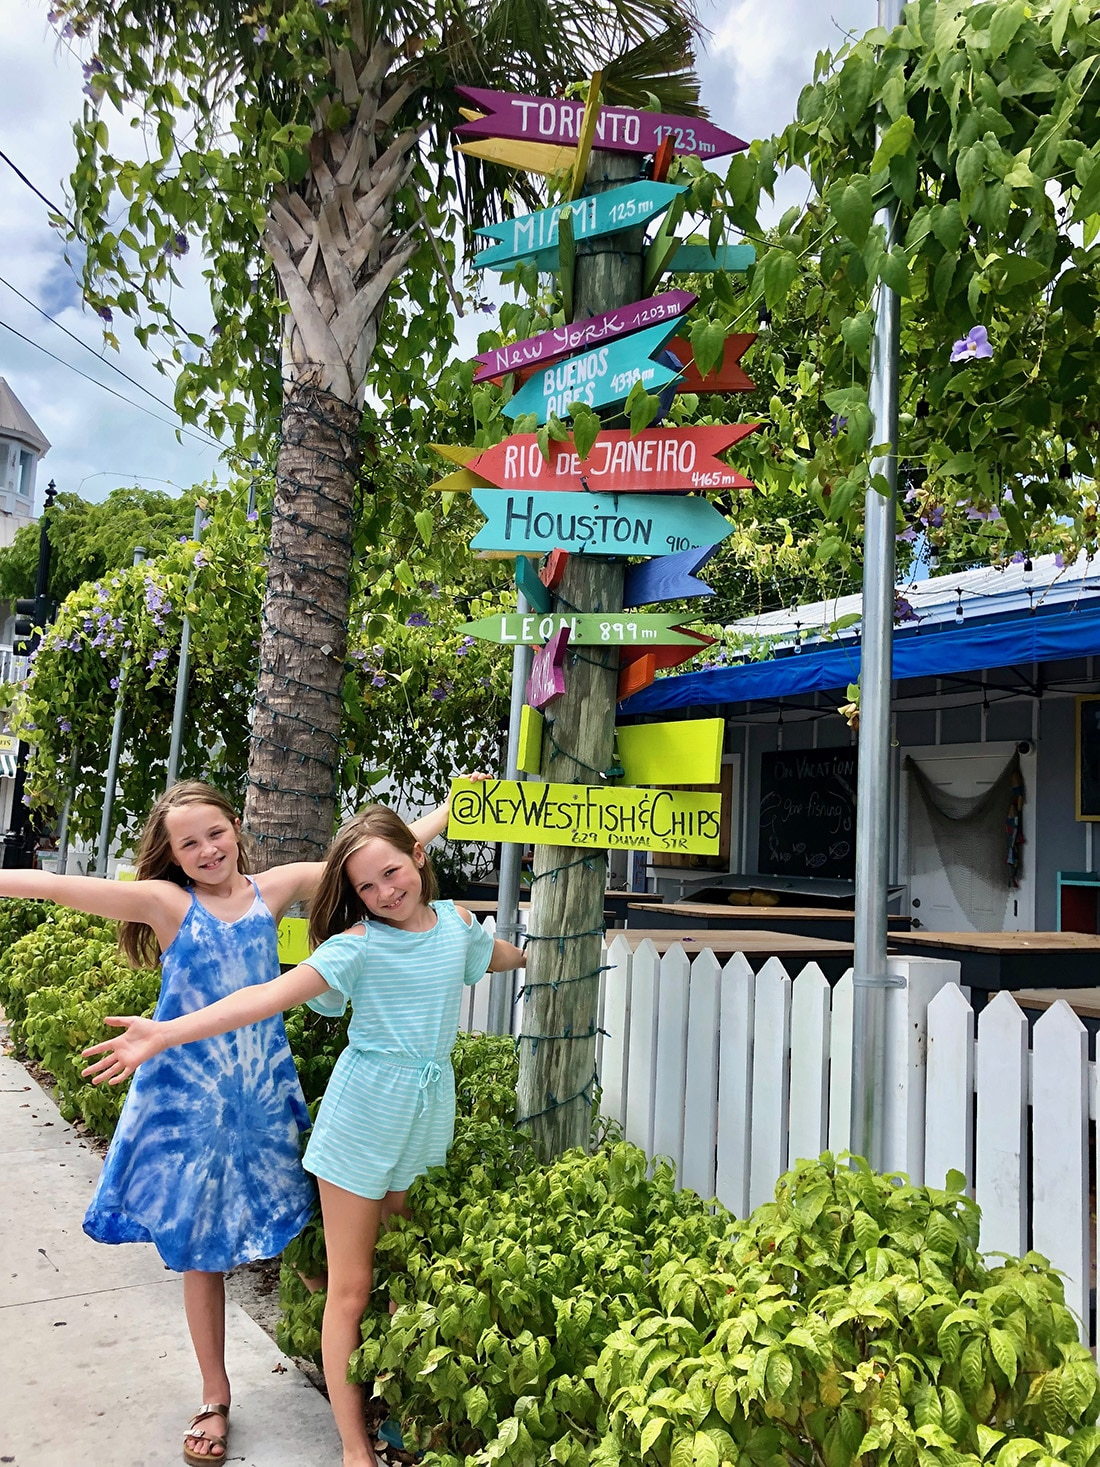 Two girls near a Key West Street Sign